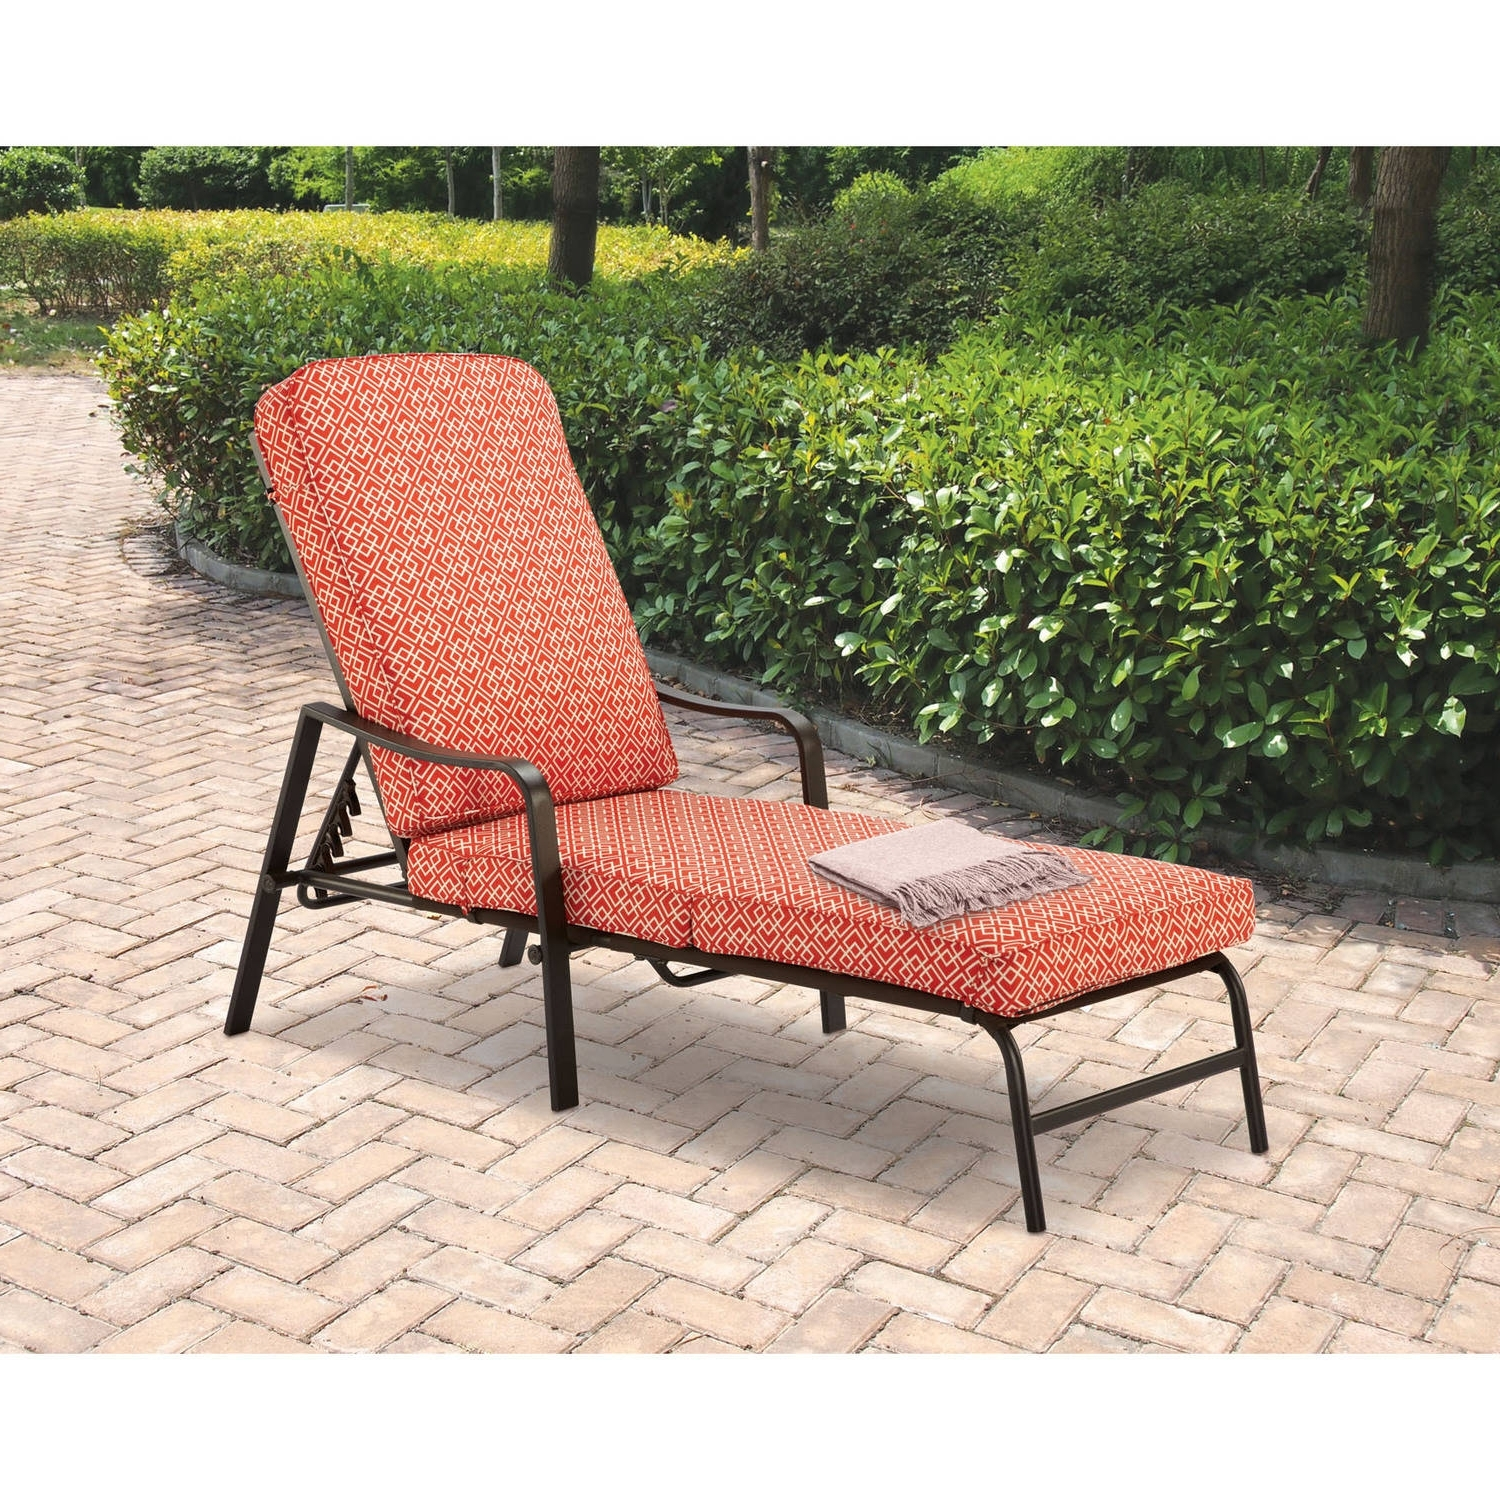 Mainstays Outdoor Chaise Lounge, Orange Geo Pattern – Walmart With 2018 Chaise Lounge Chairs With Cushions (View 10 of 15)